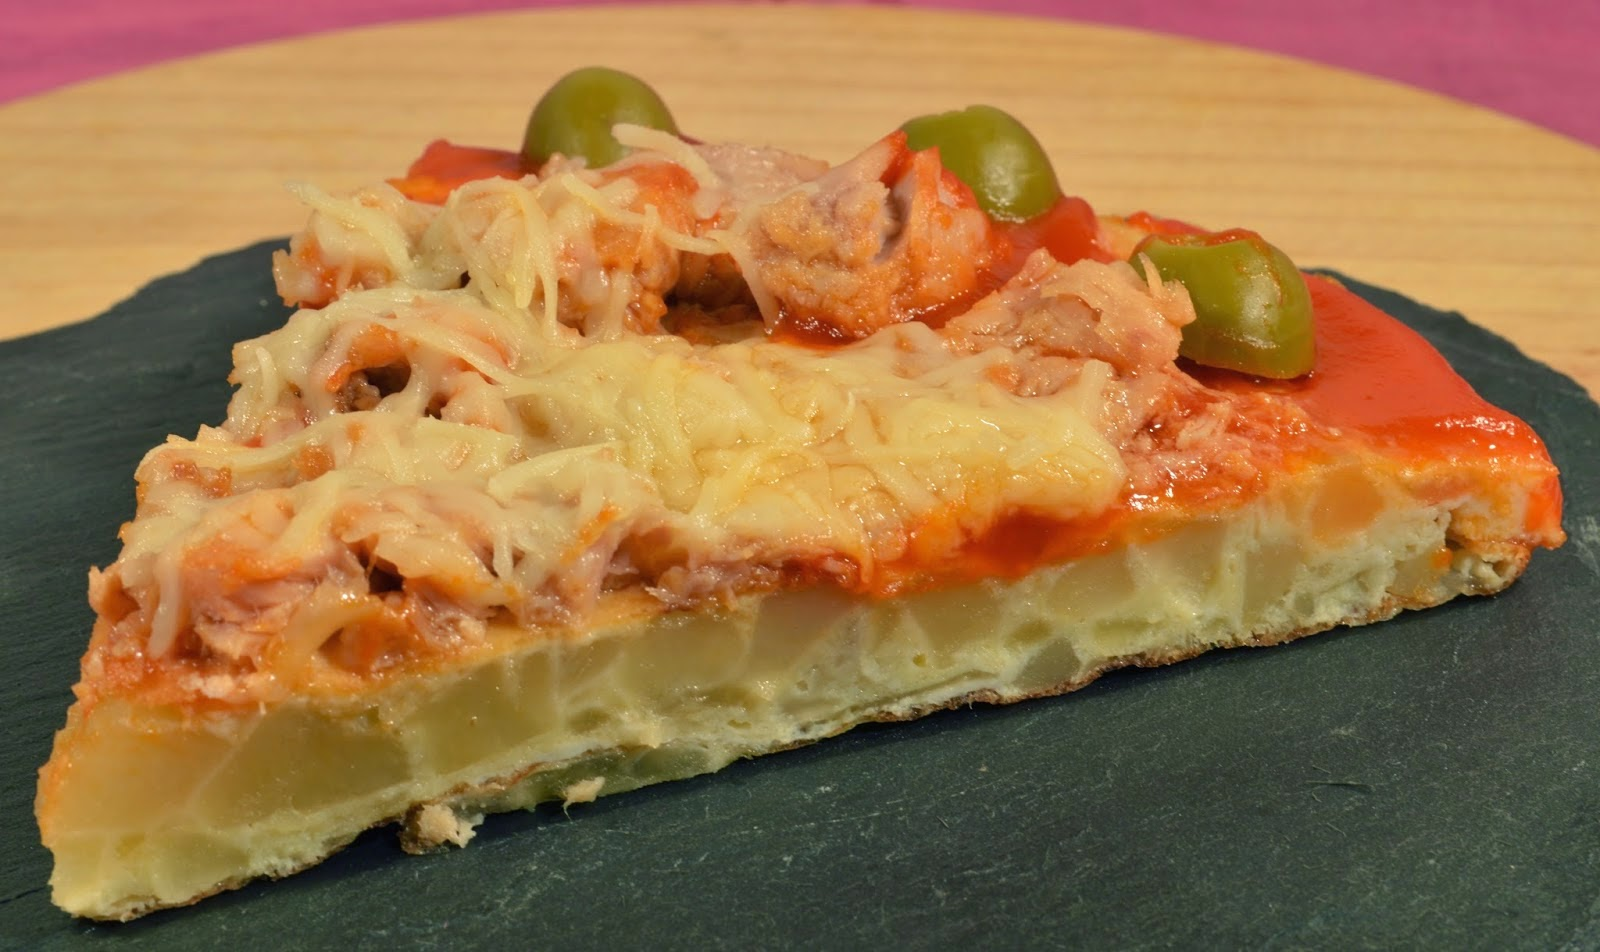 PIZZA SOBRE BASE DE TORTILLA DE PATATA